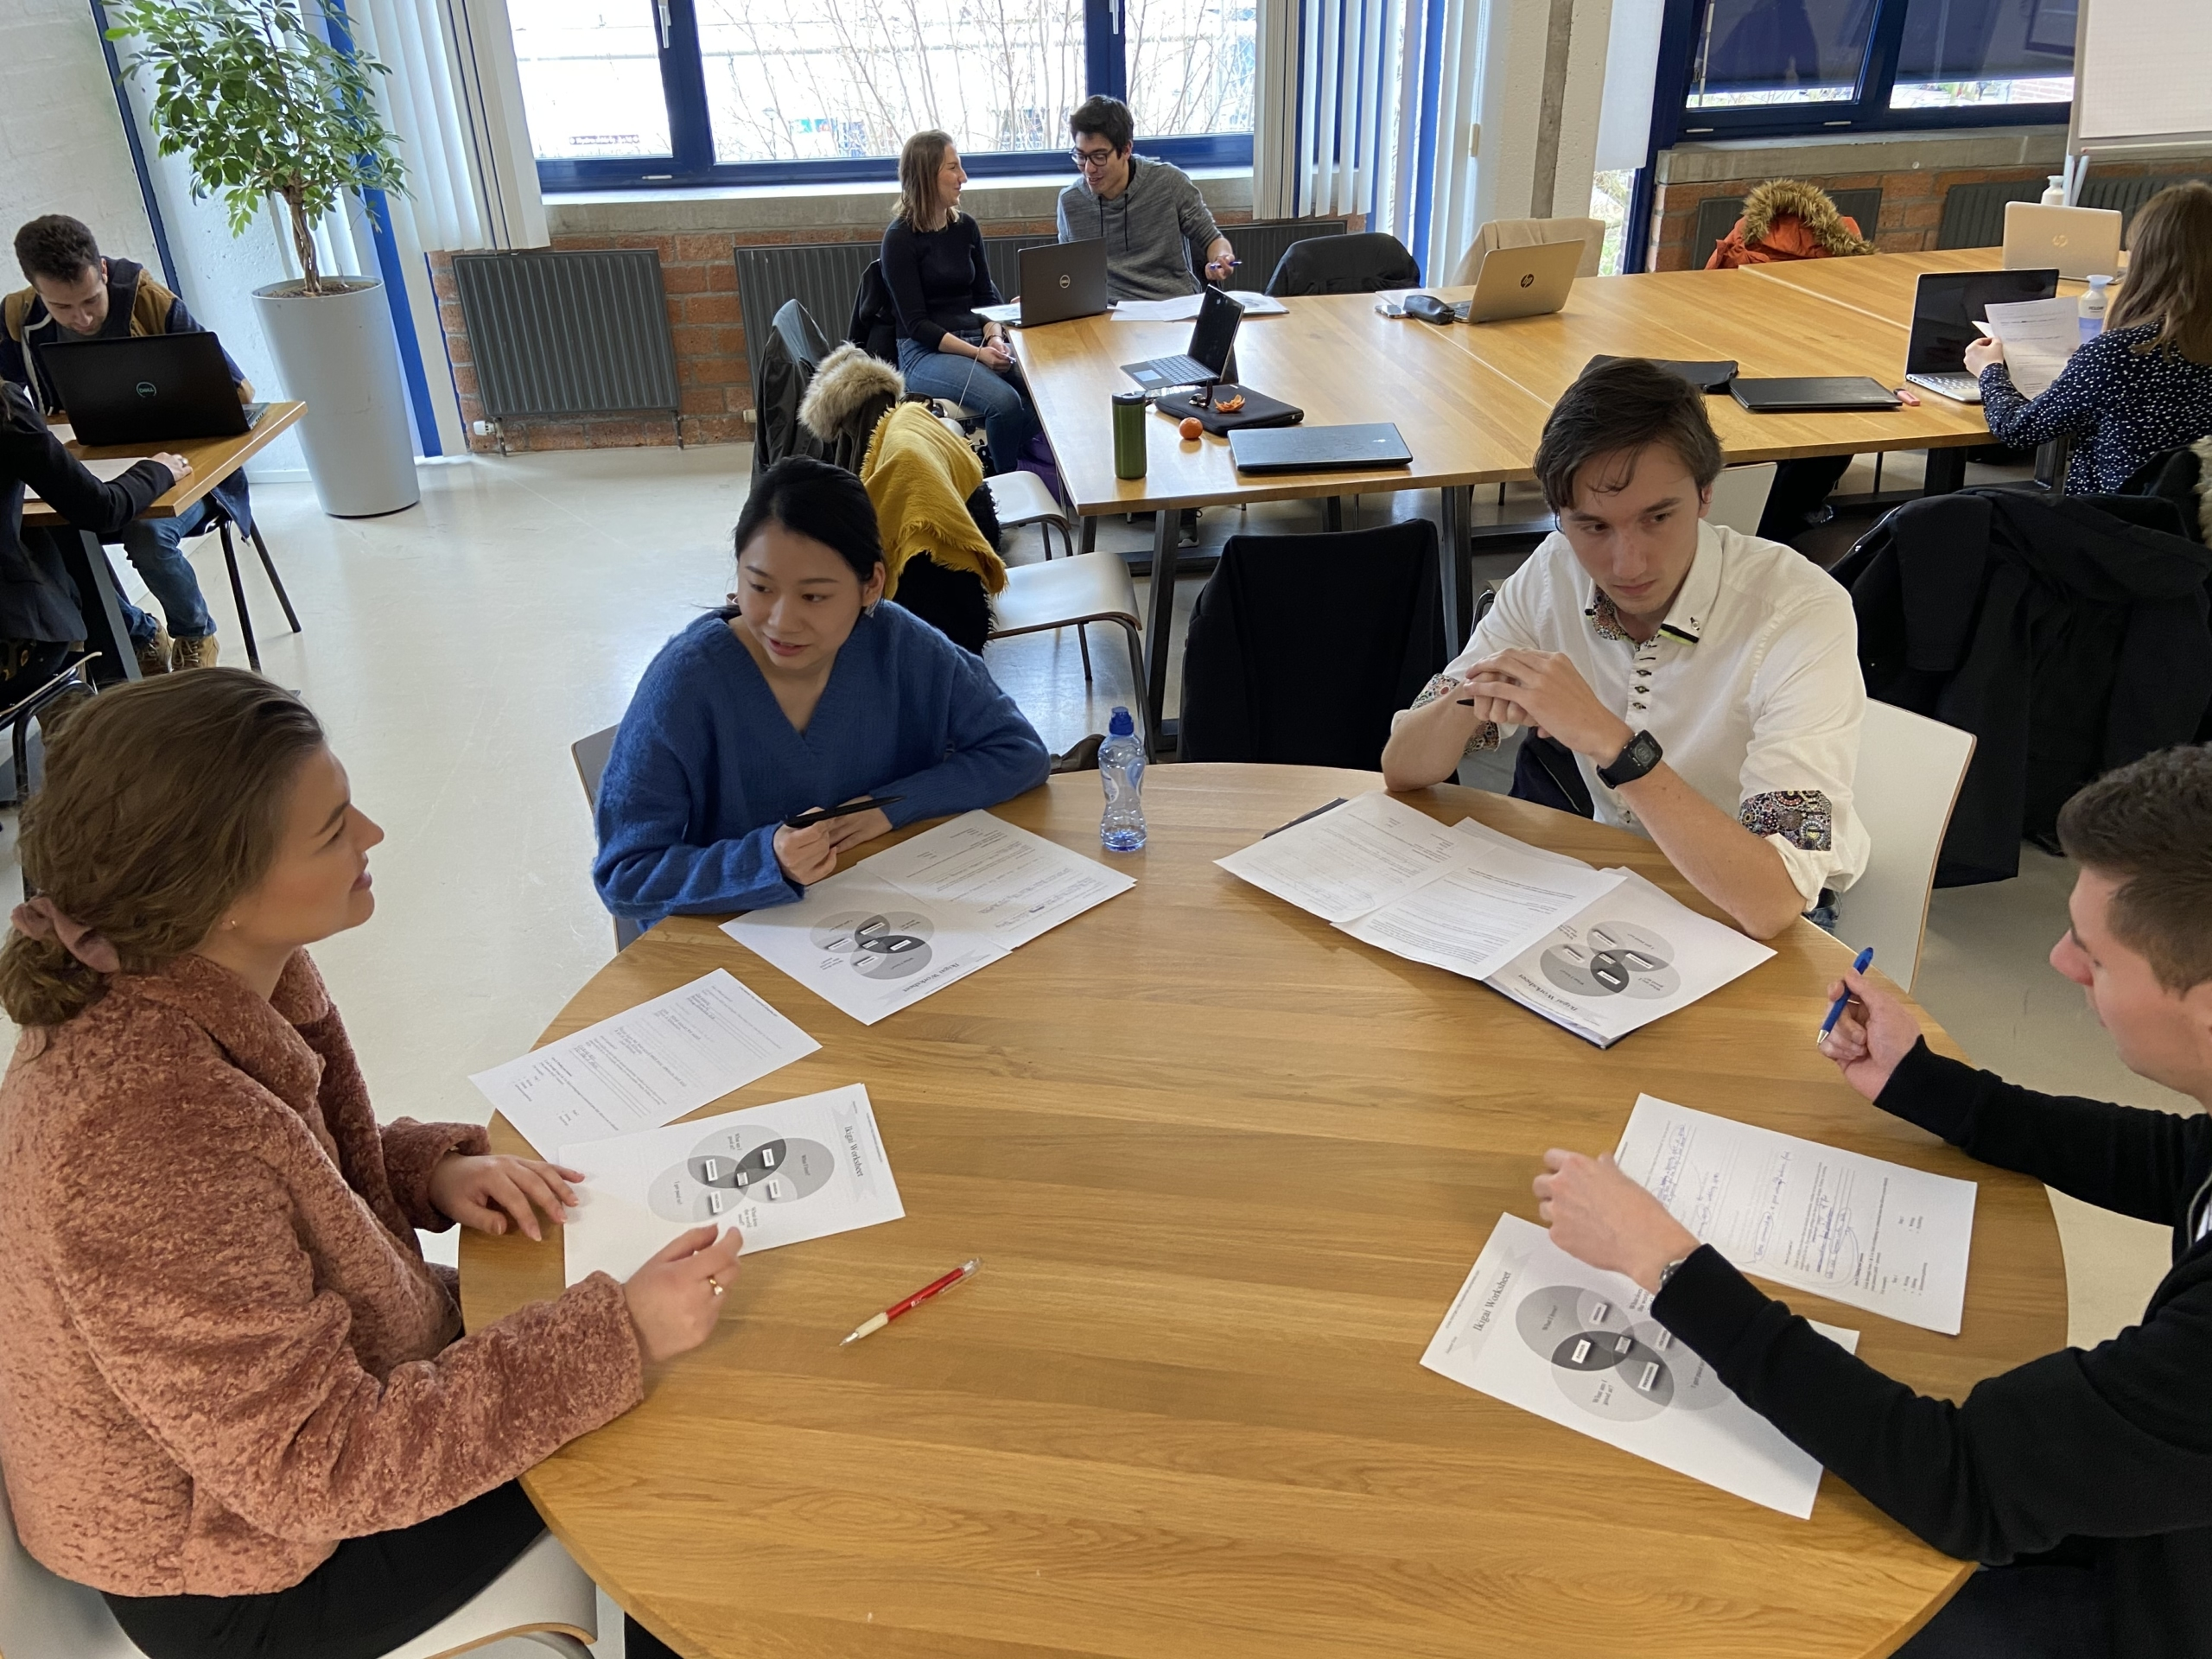 Harnessing the collaborative power of peer learning